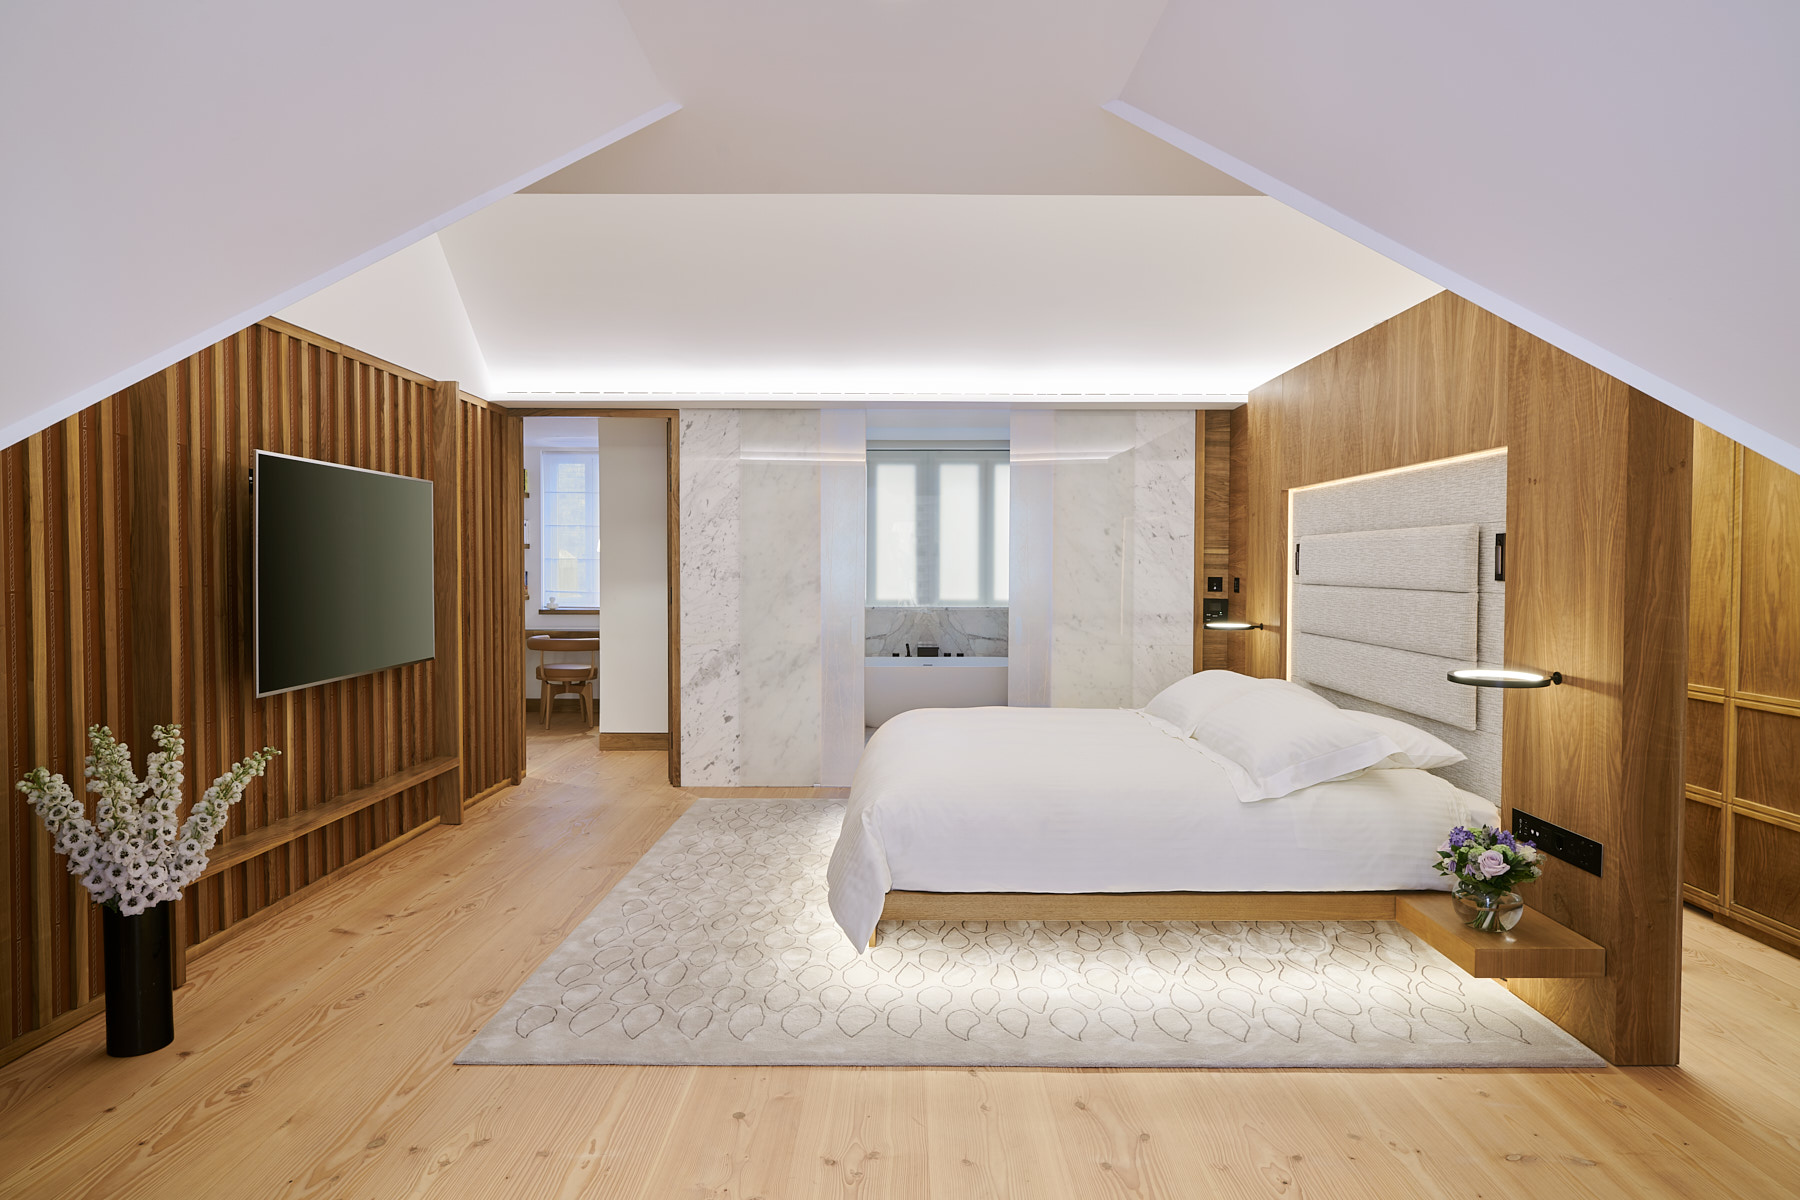 MASTER BEDROOM_CONNAUGHT MEWS HOUSE_By Loomah Bespoke Carpets & Rugs_Interior Design By Michael Blair